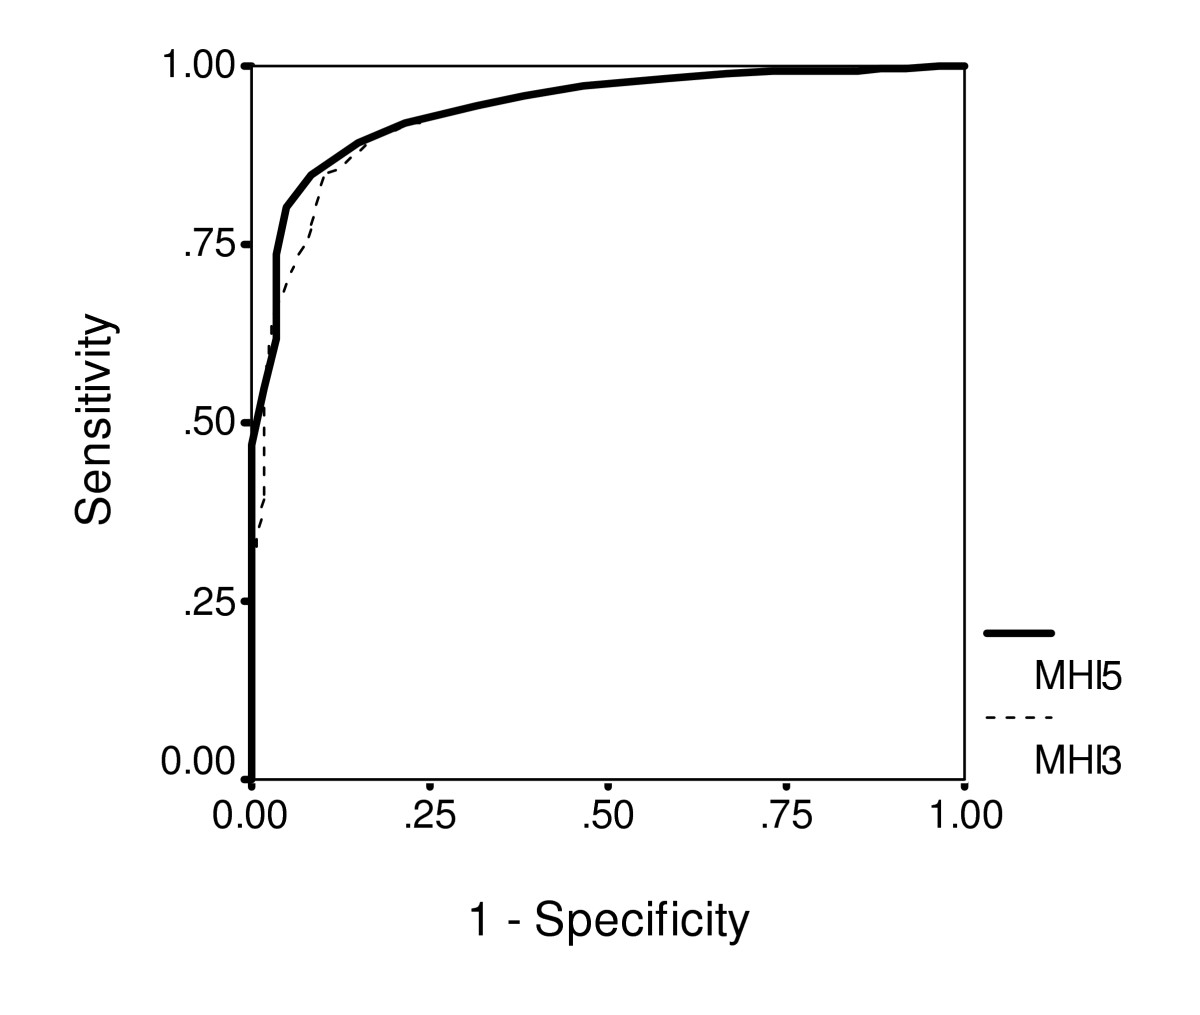 https://static-content.springer.com/image/art%3A10.1186%2F1477-7525-3-48/MediaObjects/12955_2005_Article_199_Fig1_HTML.jpg